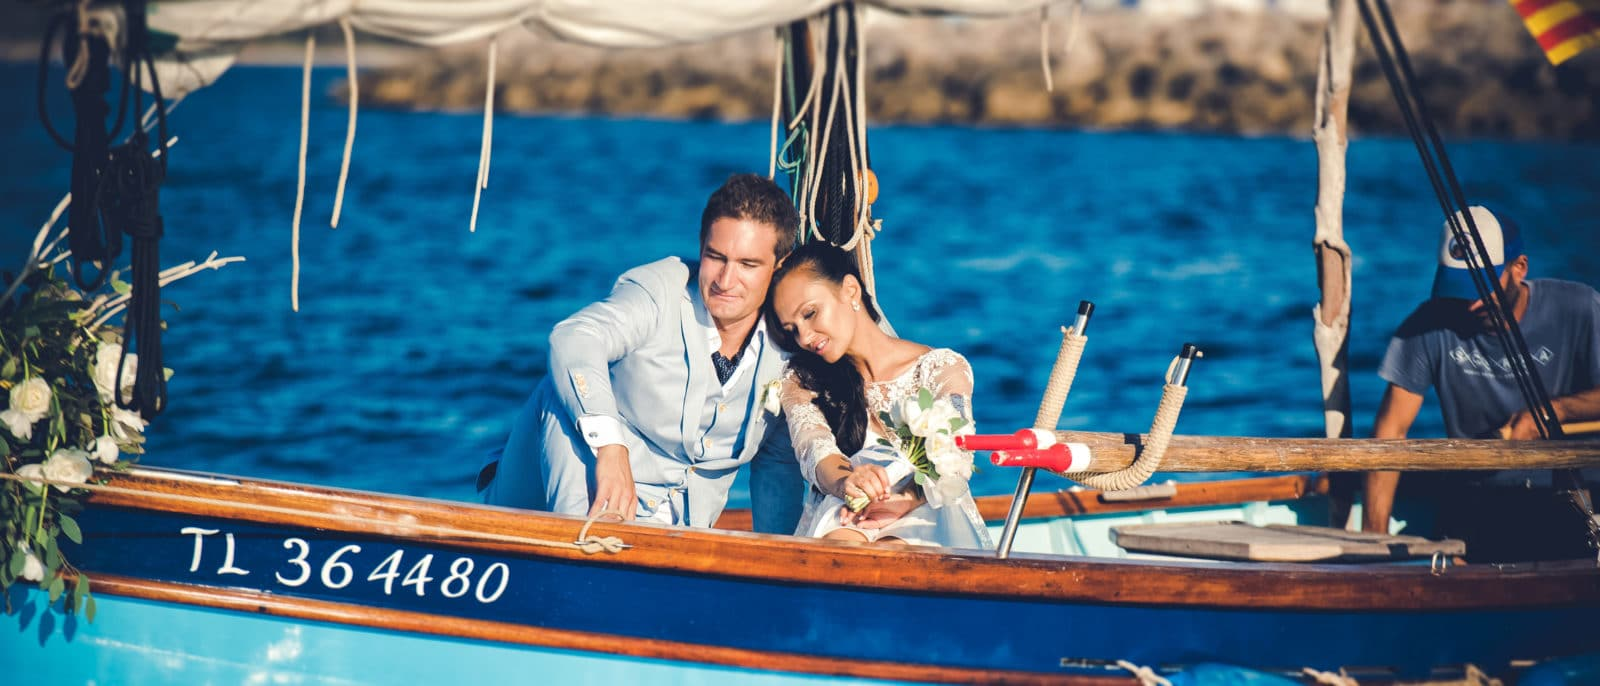 a-boat-trip-on-the-island-of-porquerolles